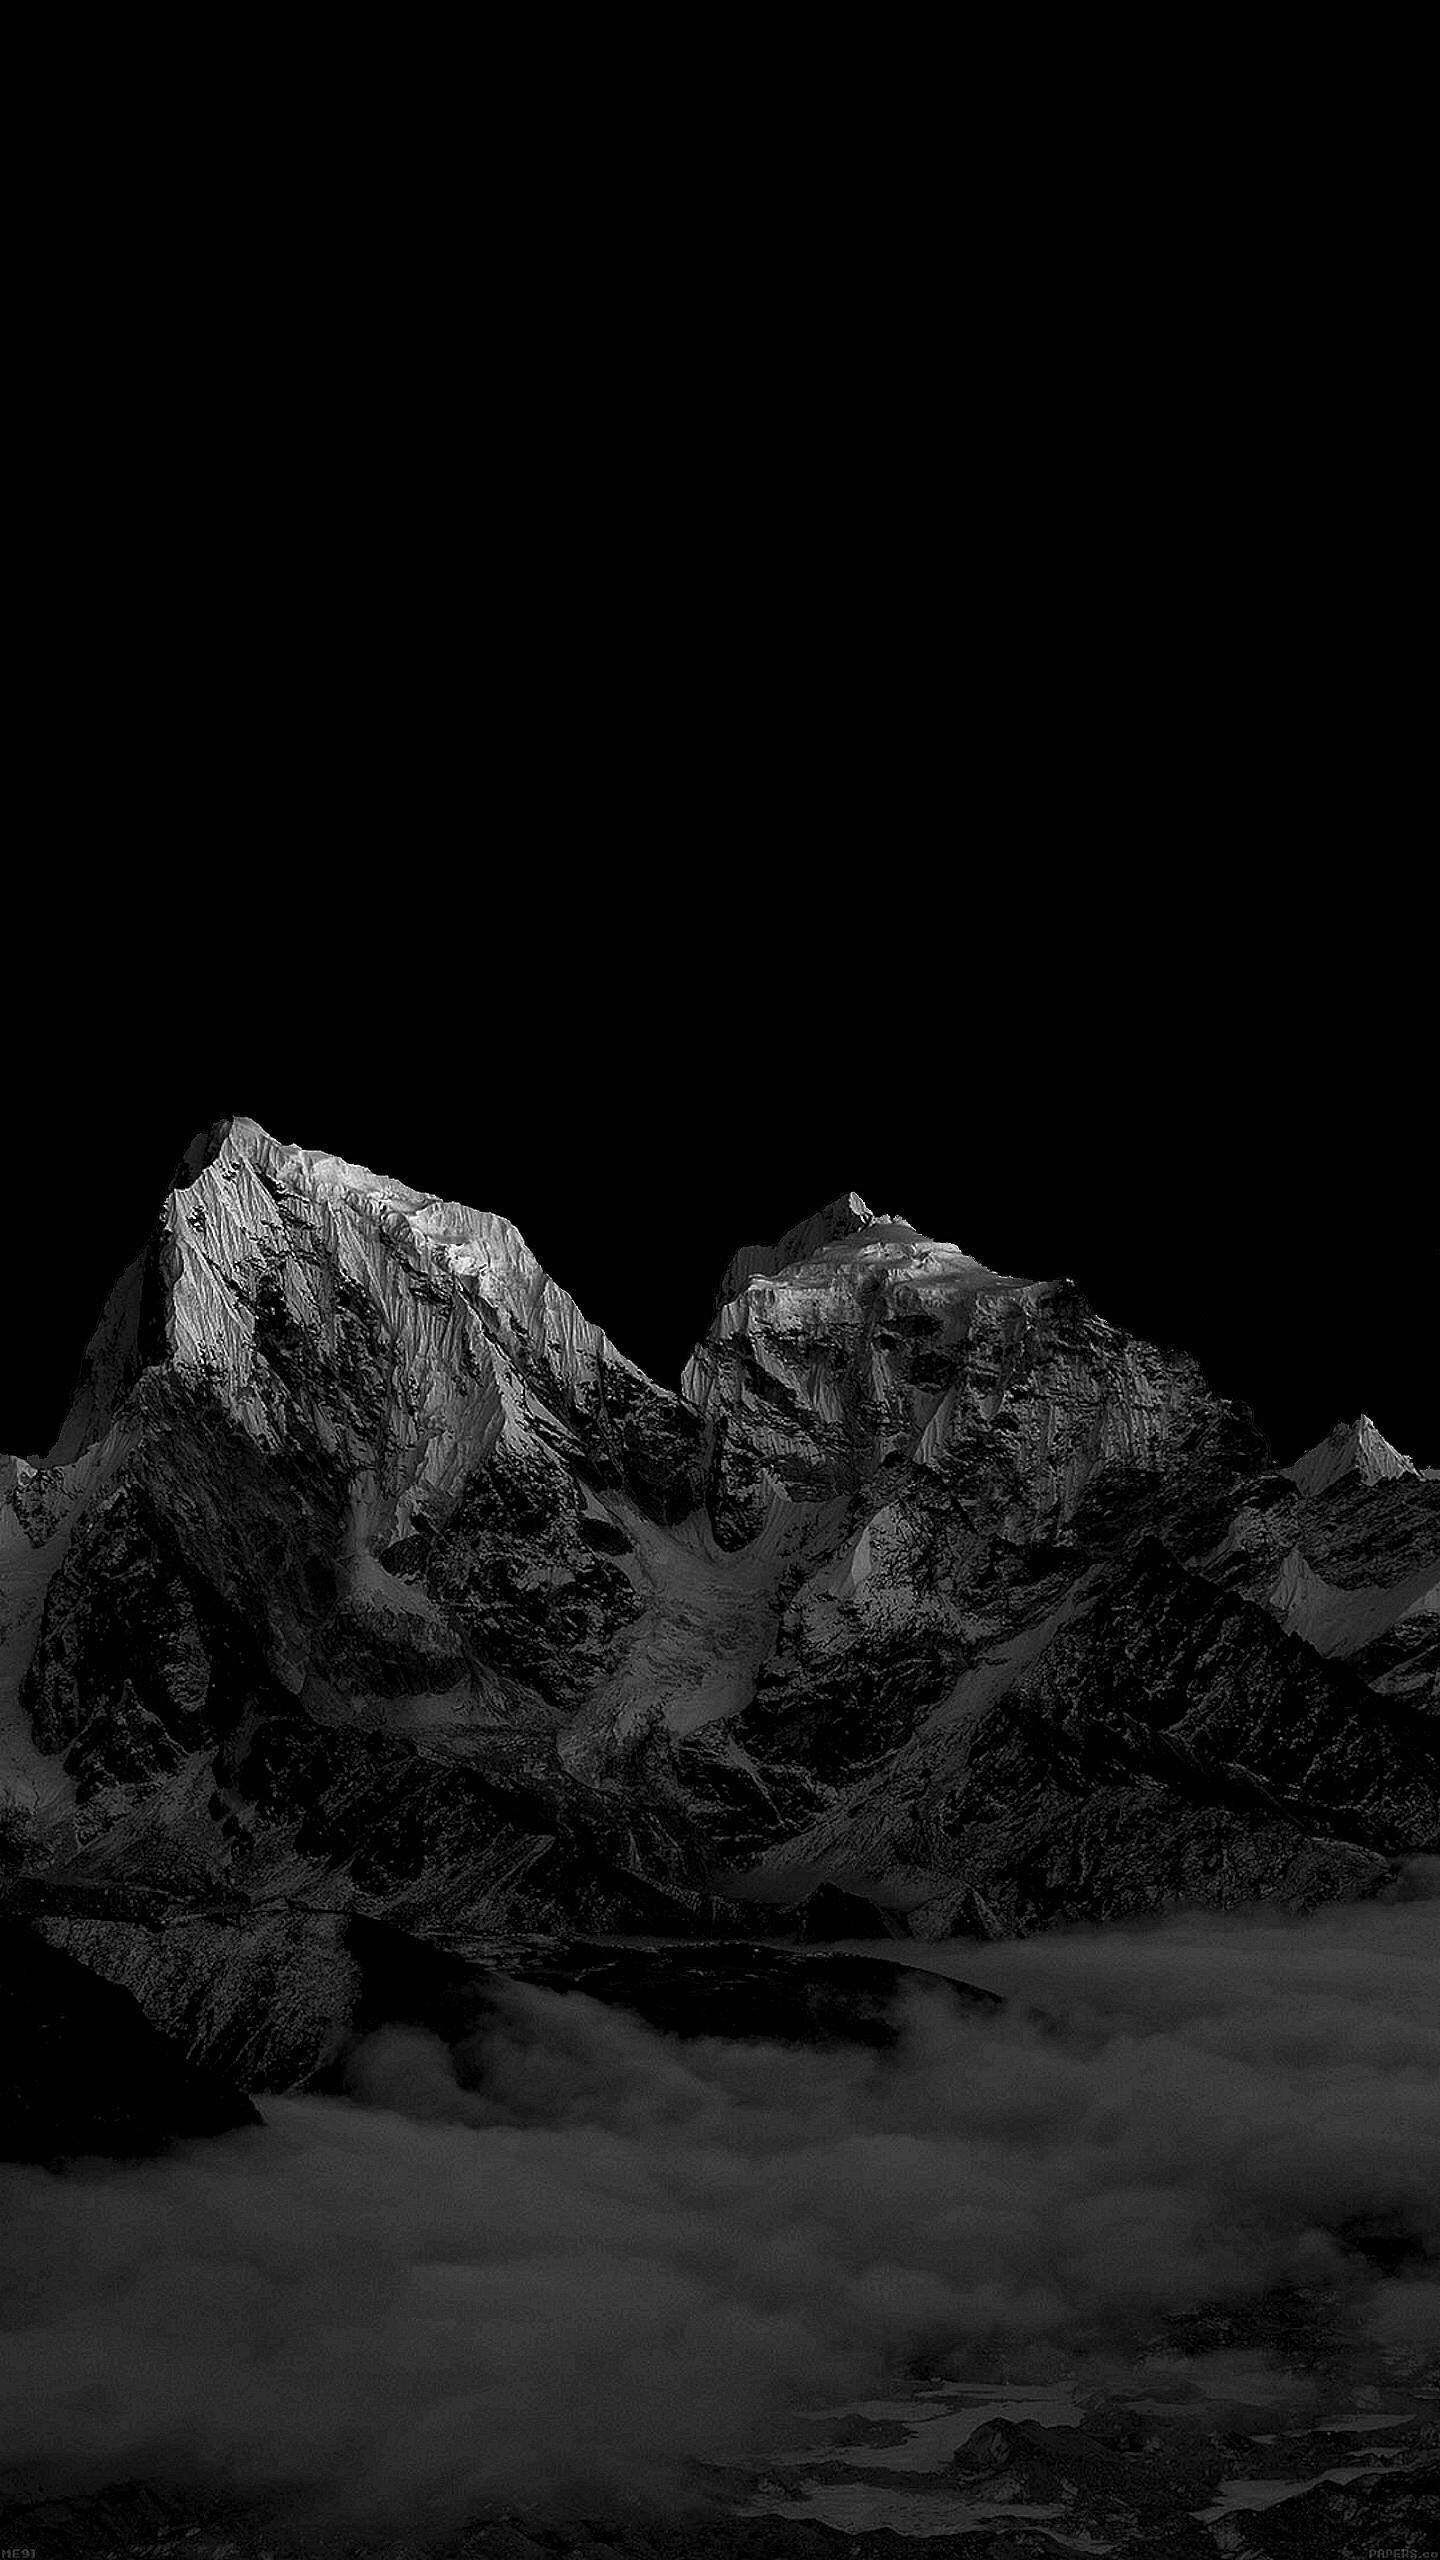 Black Oled Wallpaper Group (53+), Download for free